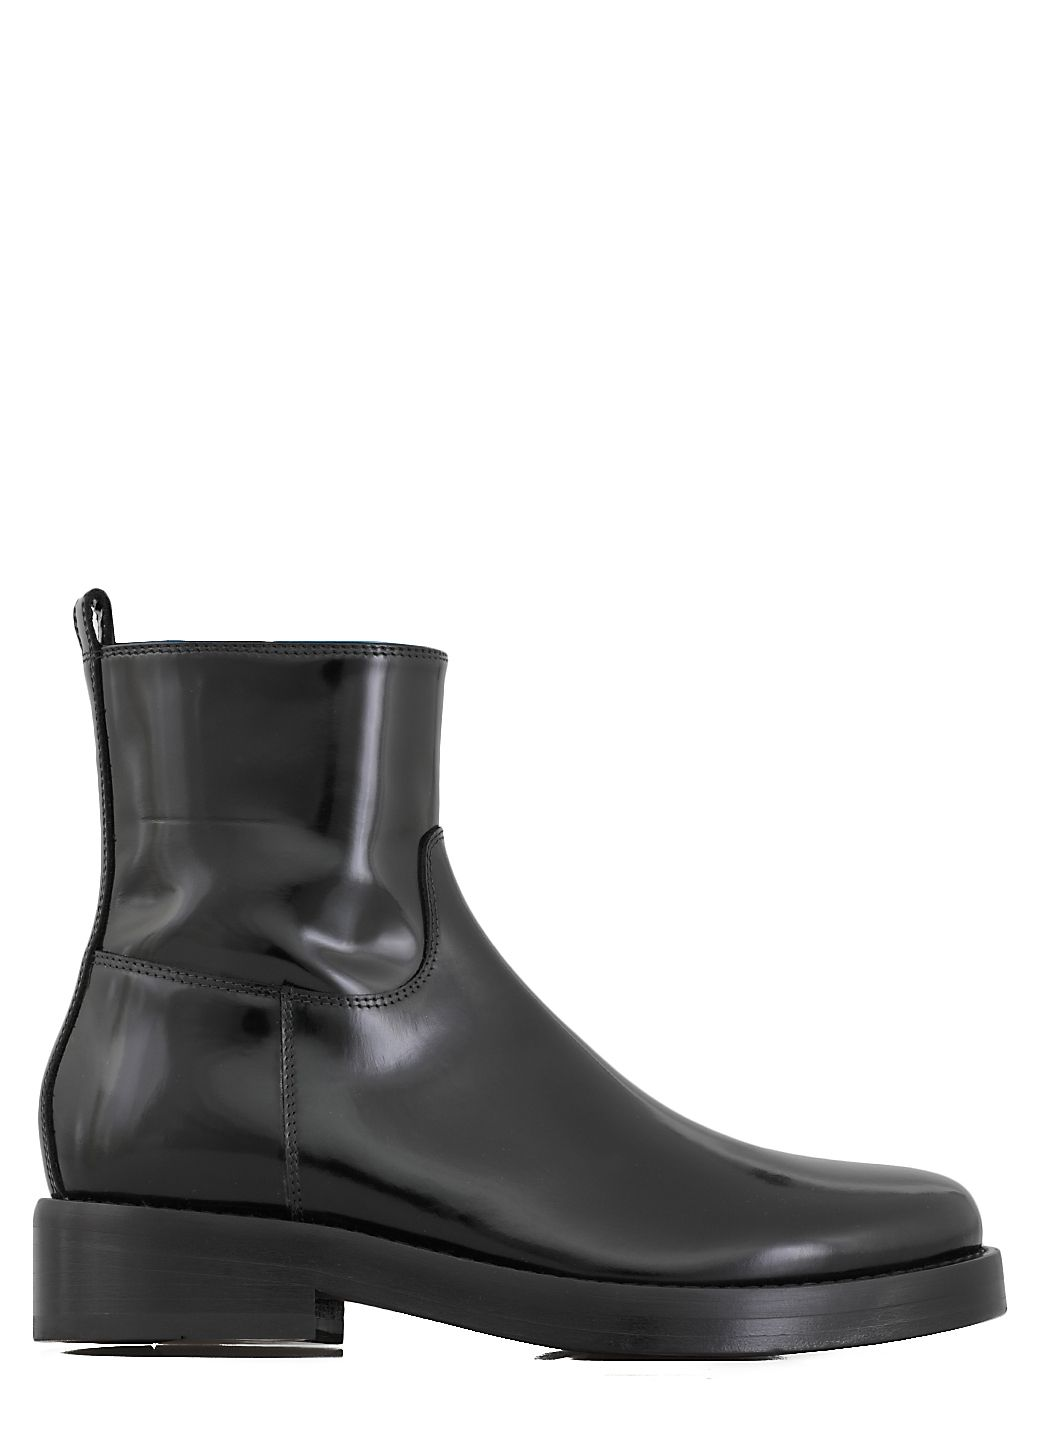 Polished leather boot